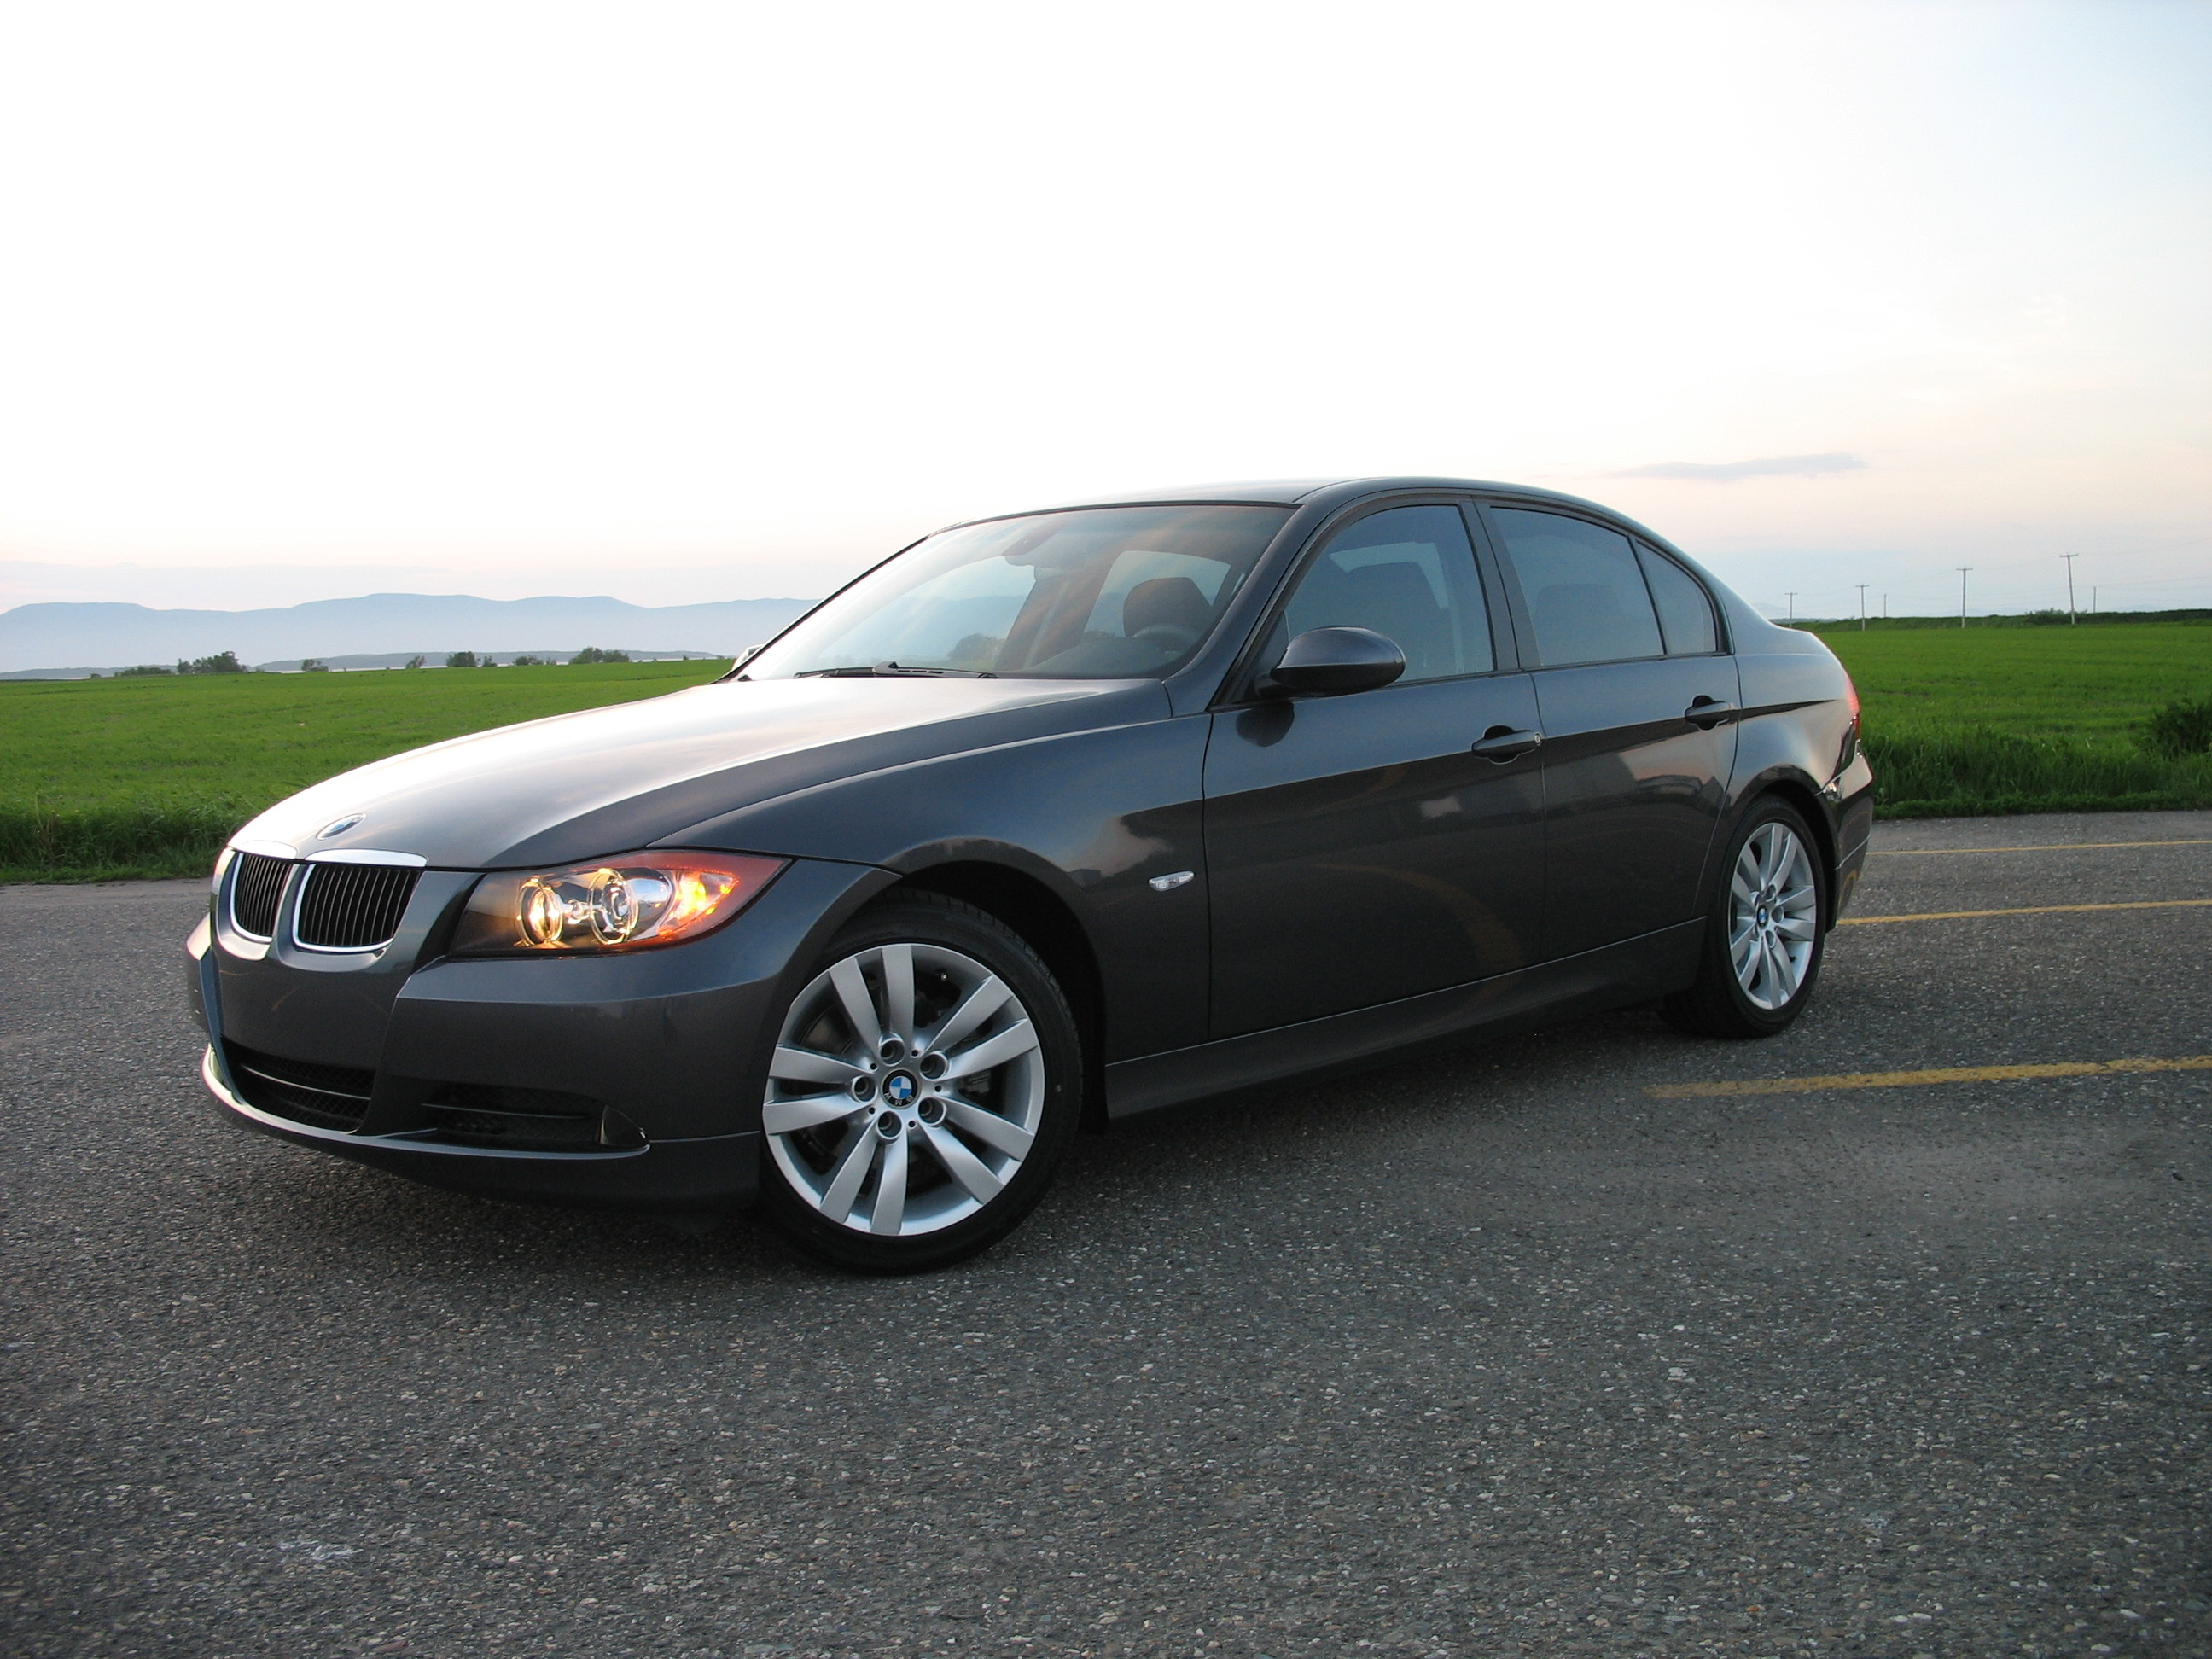 stock 2007 bmw 328i 1 4 mile drag racing timeslip specs 0. Black Bedroom Furniture Sets. Home Design Ideas